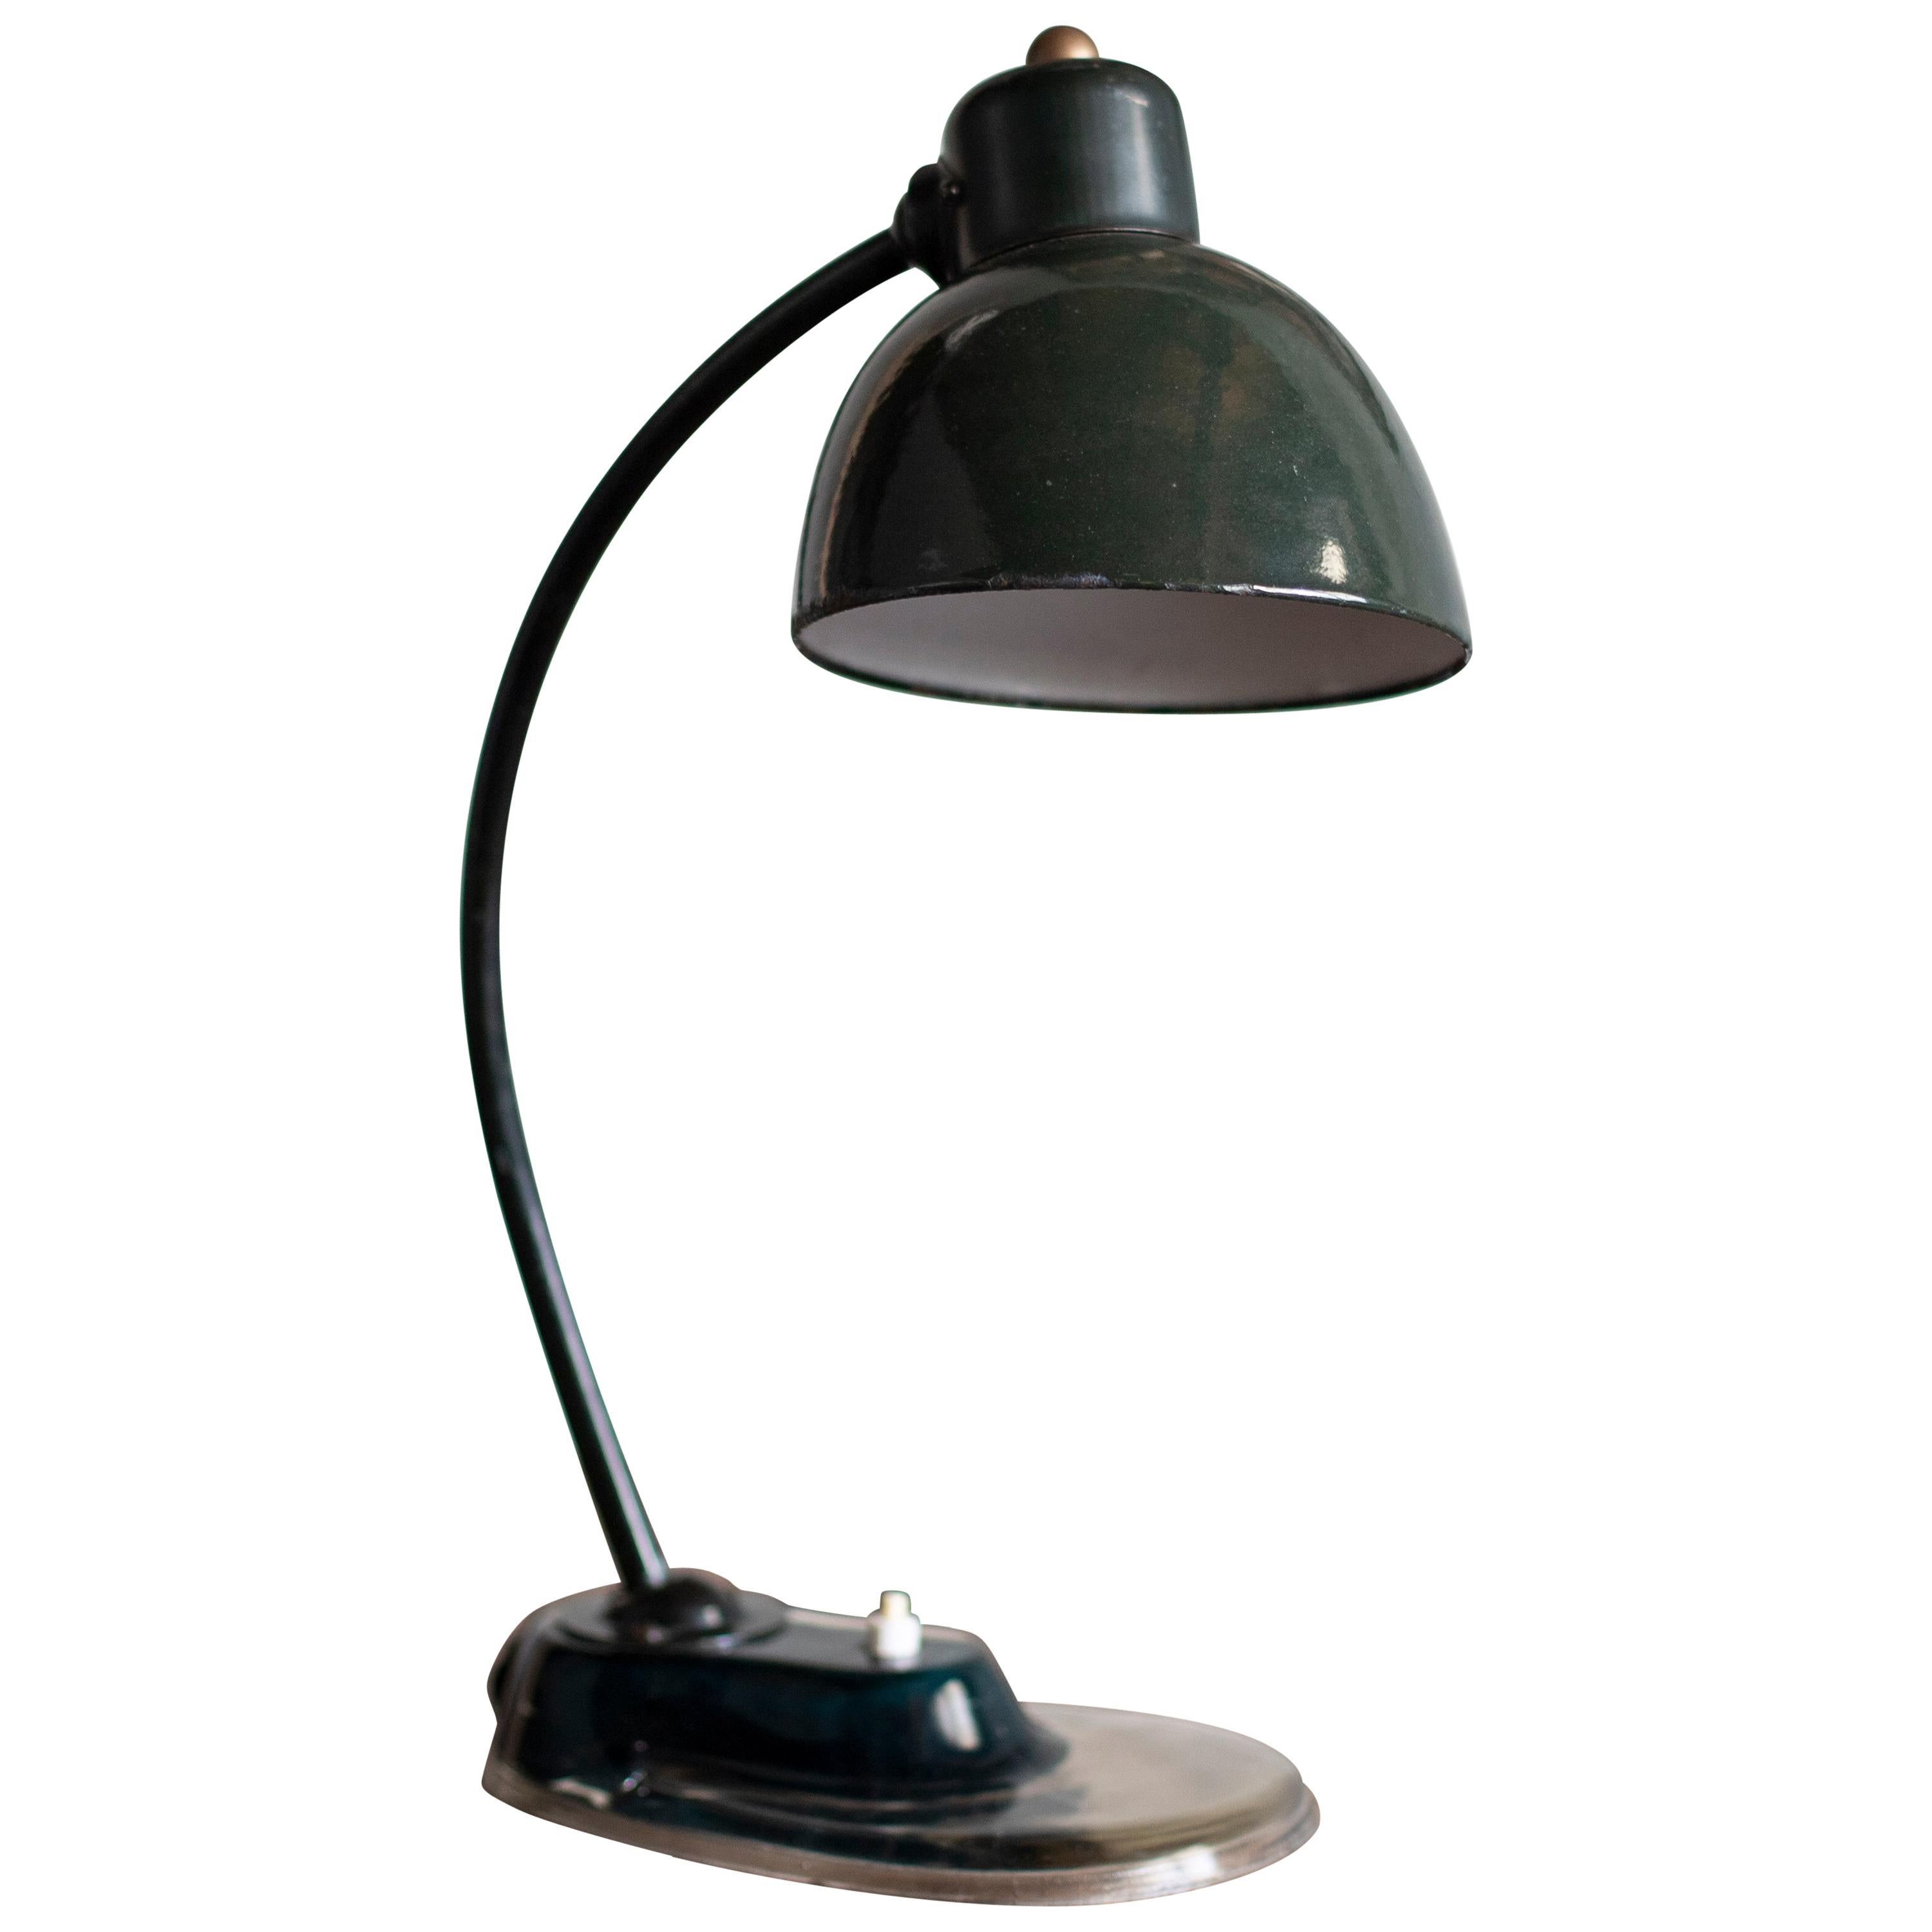 Kandem Desk Lamp by Marianne Brandt, 1930s